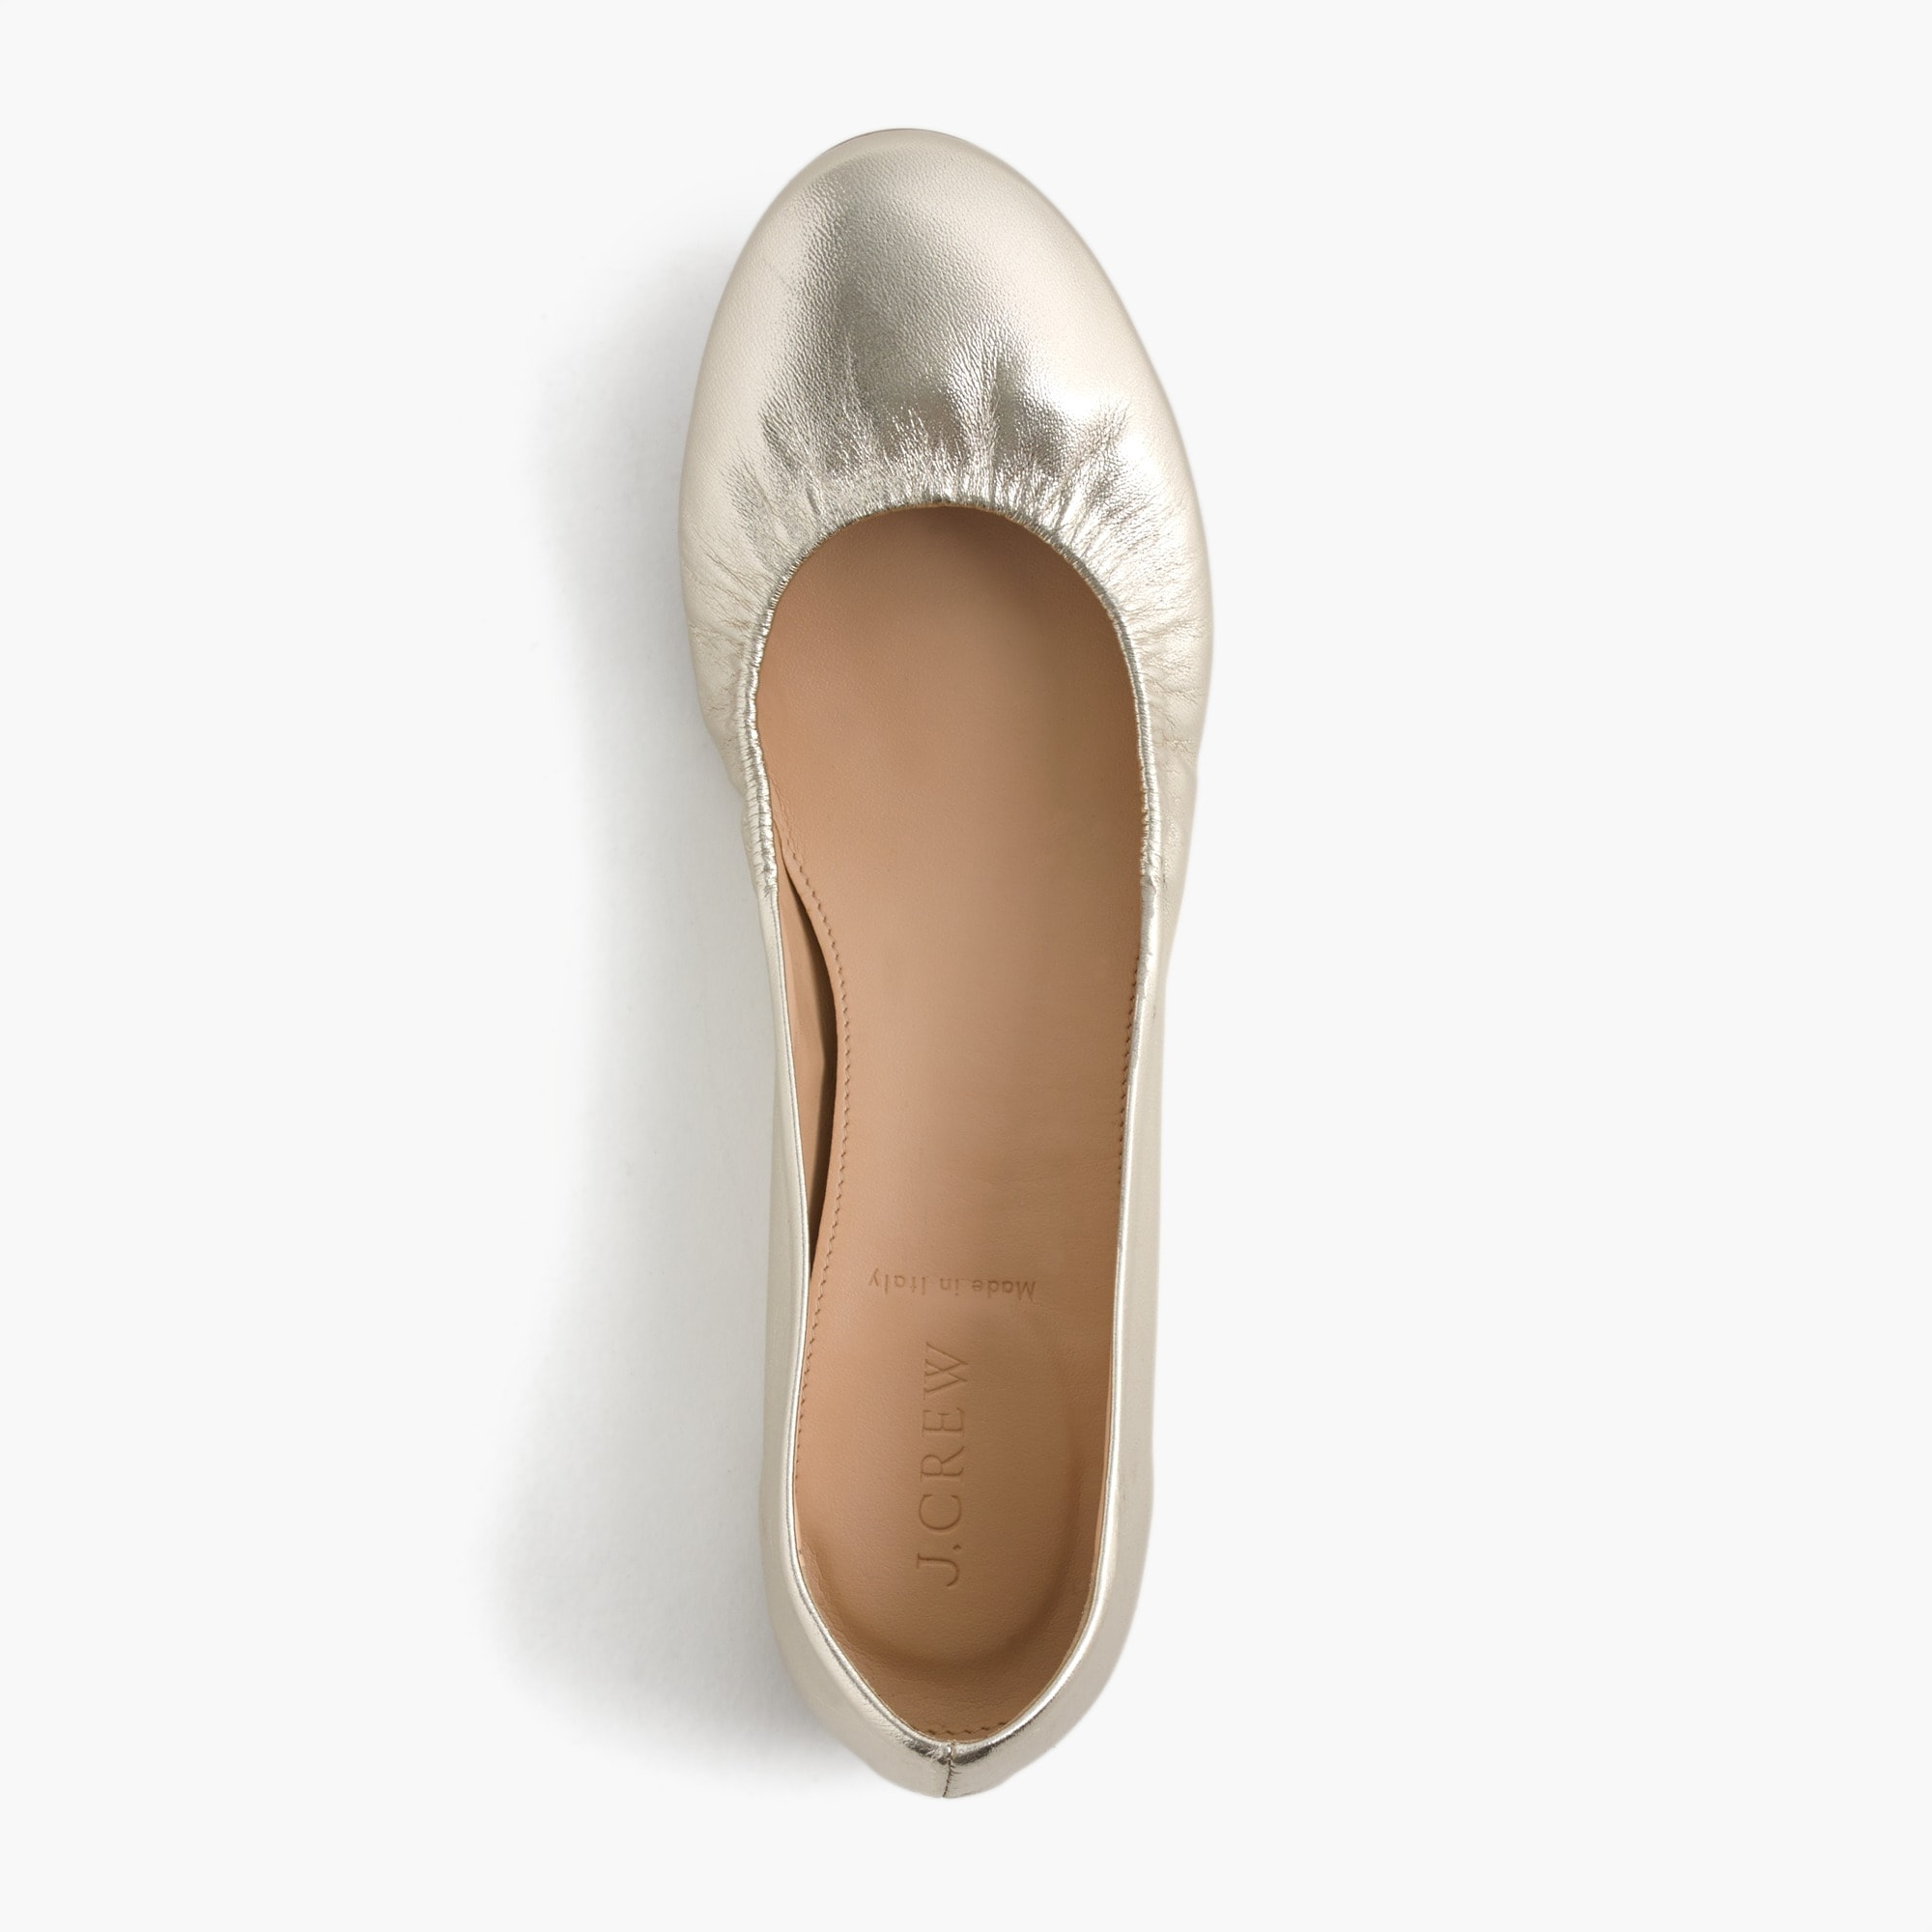 Image 1 for Cece Italian-made ballet flats in metallic leather